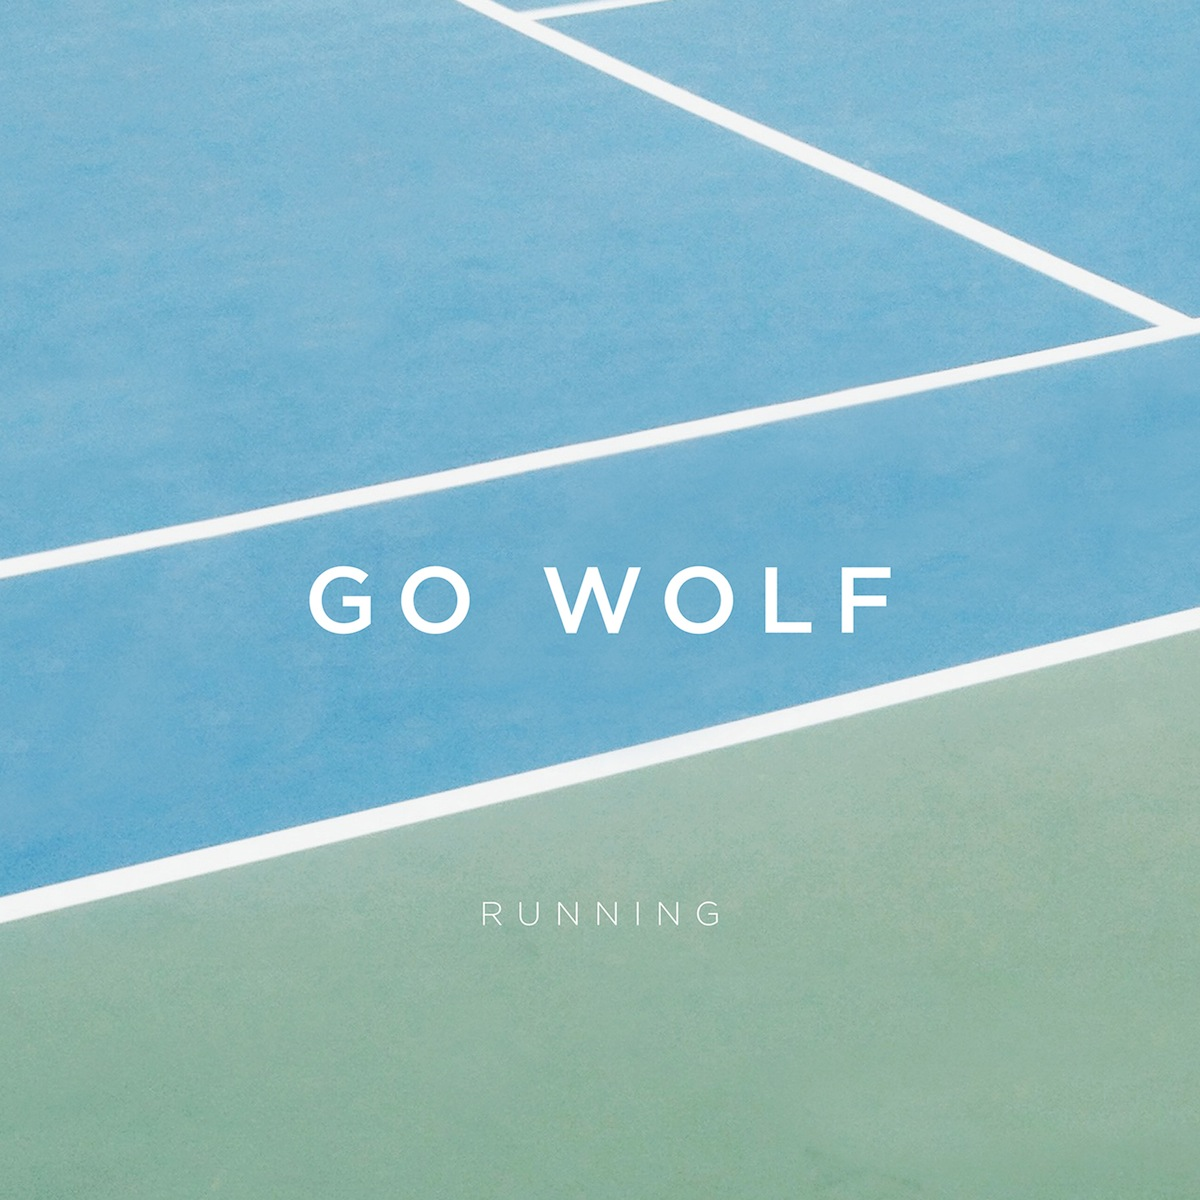 Go_Wolf_Running_Packshot_CoverArt_1200x1200